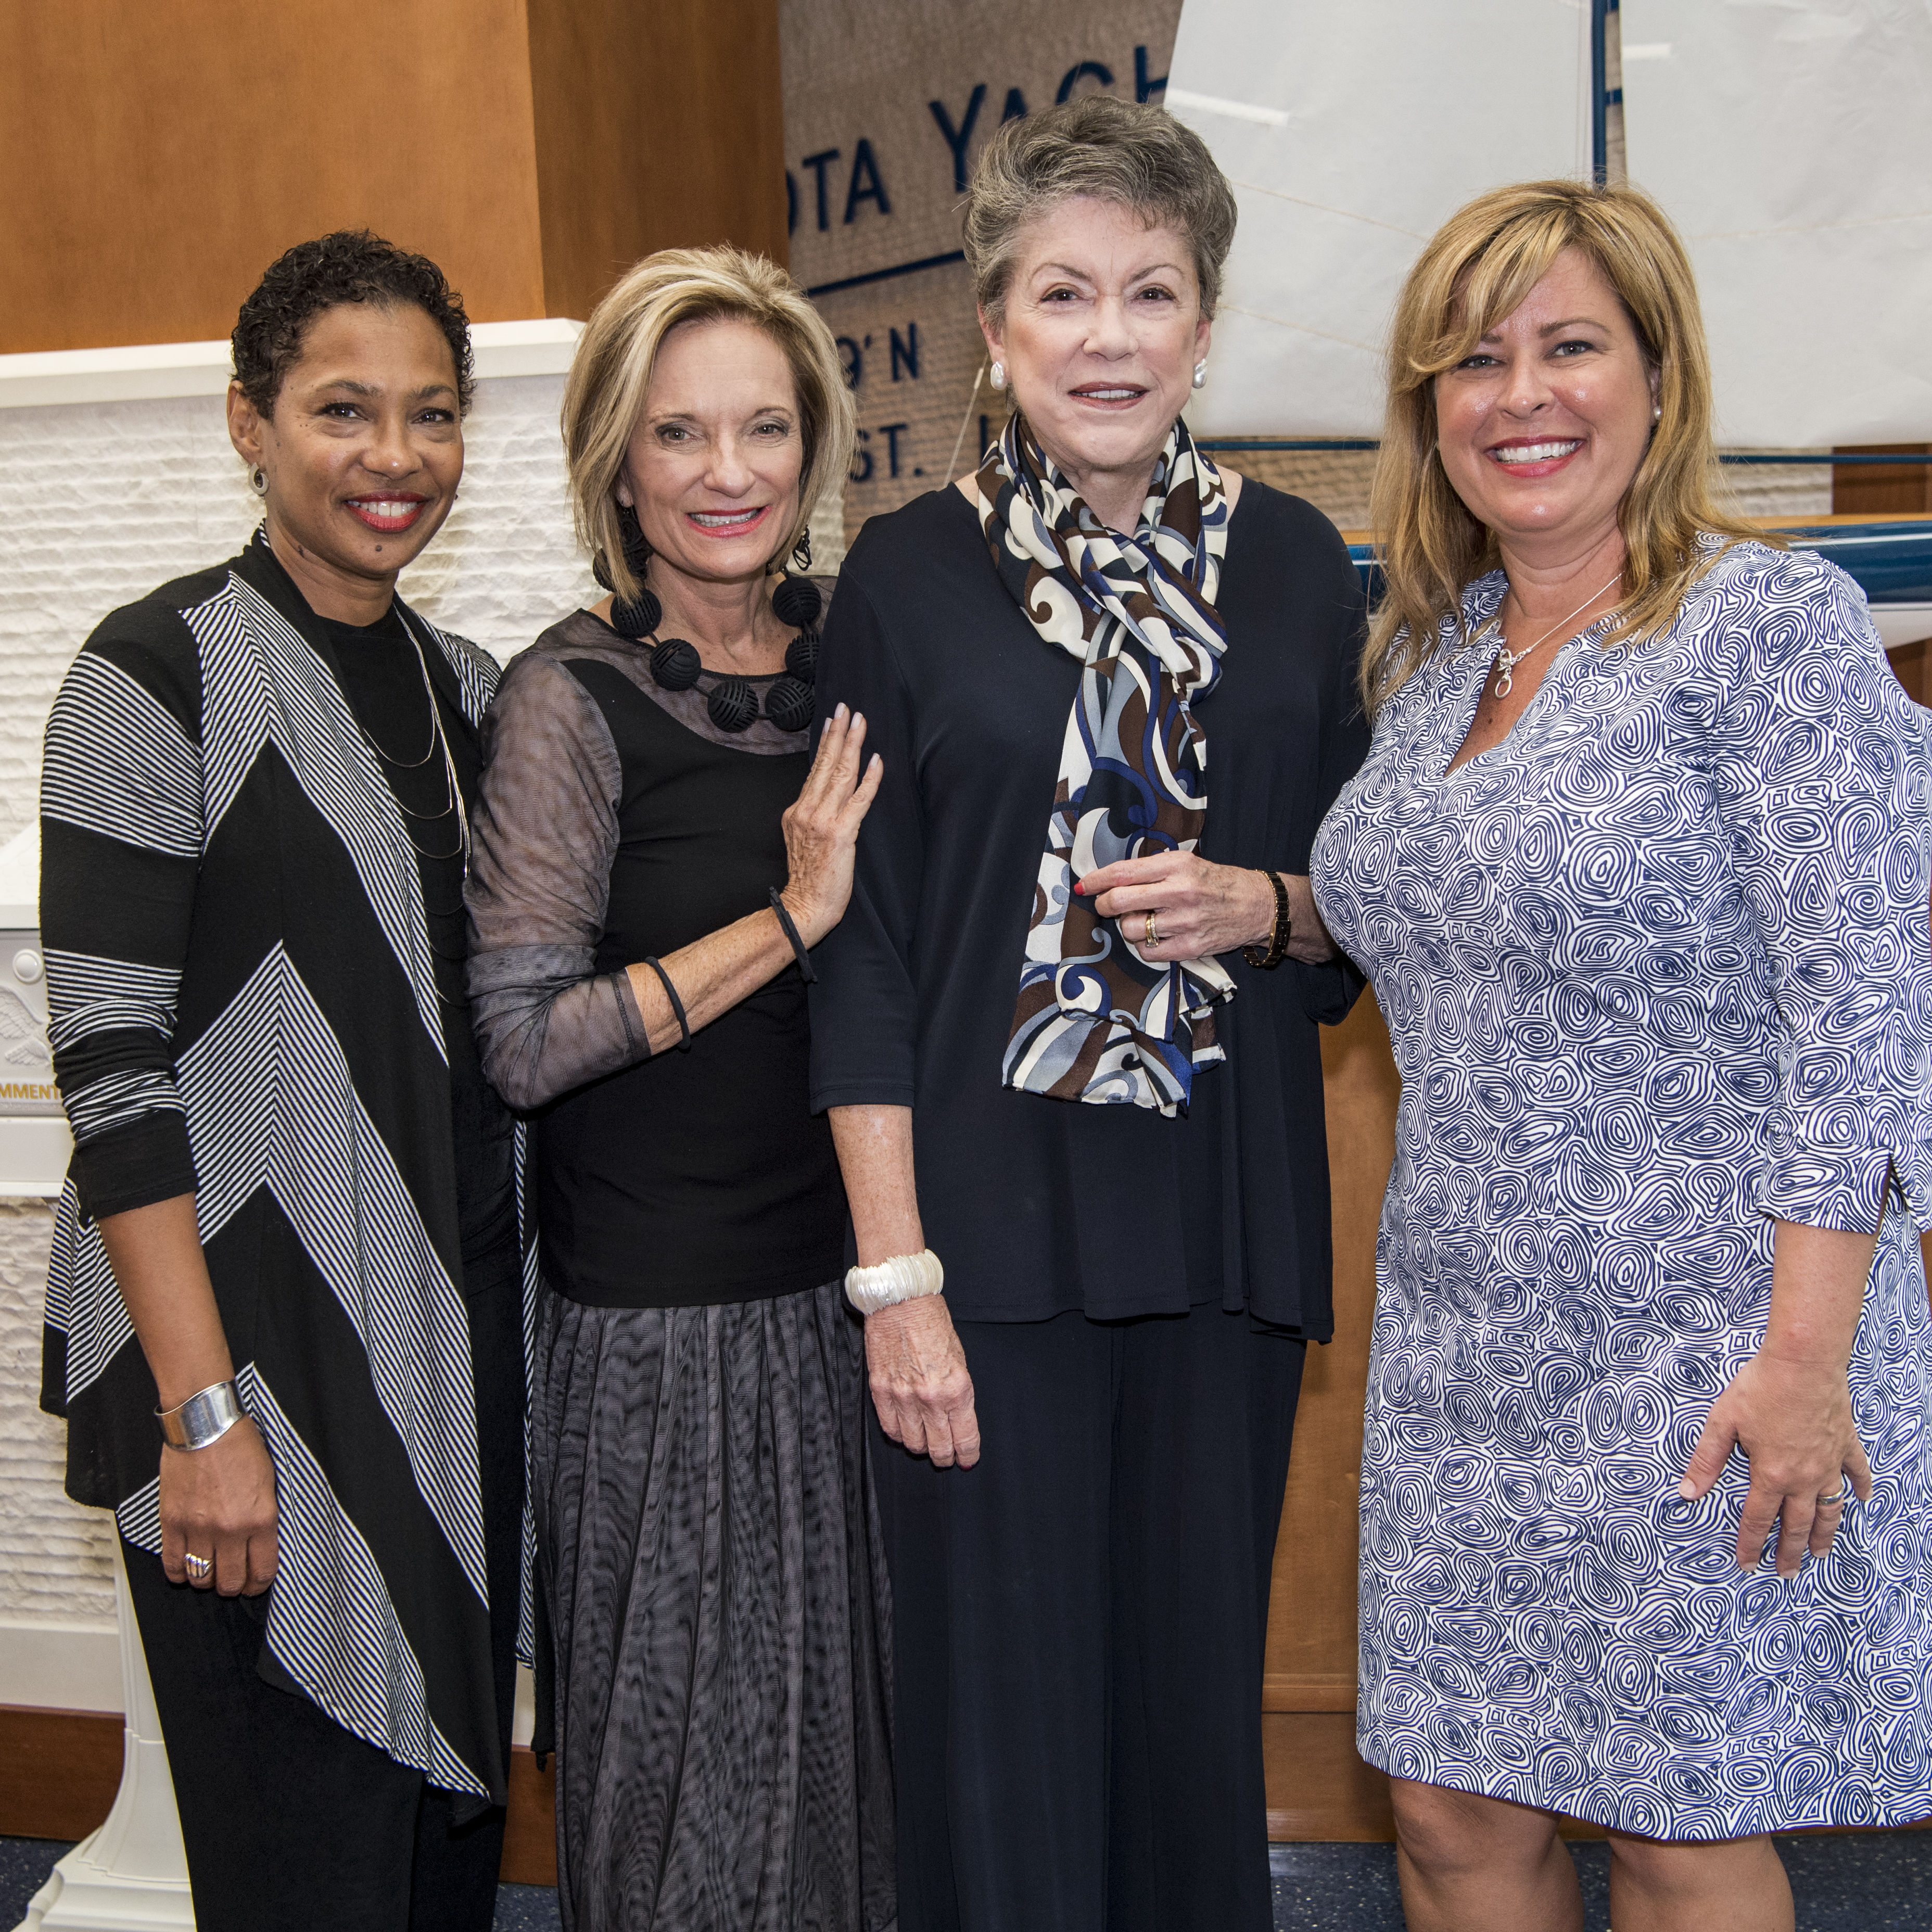 Event chairs and ceo   linda poteat brown  barbara zdravecky  susan buck  and kimberly bleach ypmjre